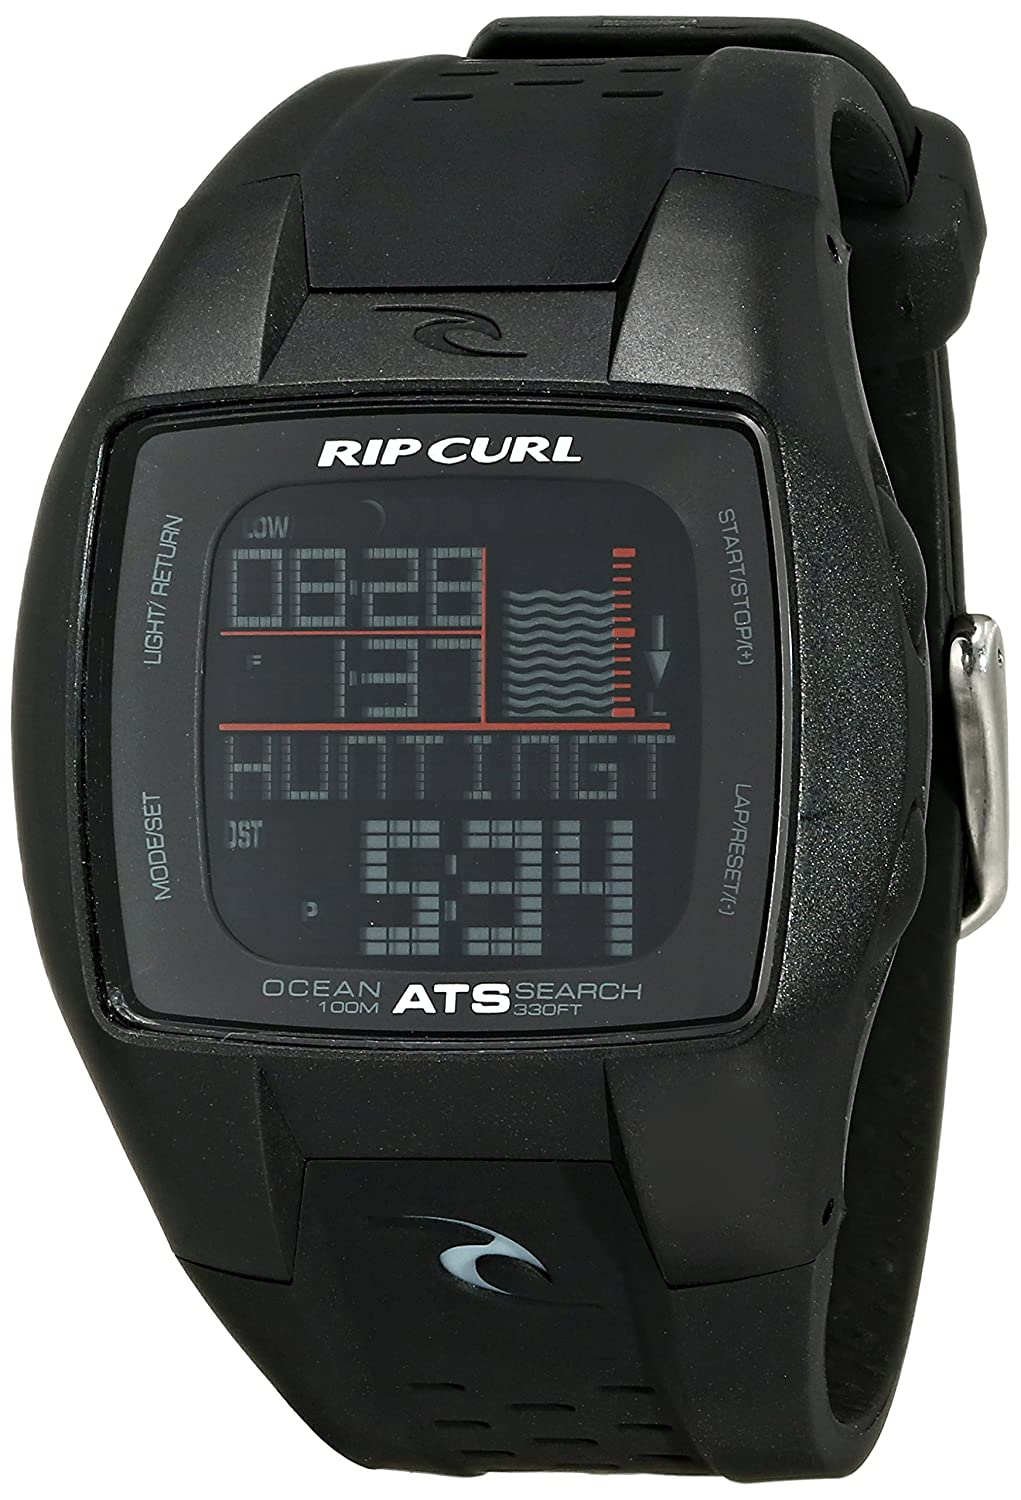 593cae047fb Rip Curl Men s A1015-MID Trestles Oceansearch Midnight Black Tide Watch   Amazon.co